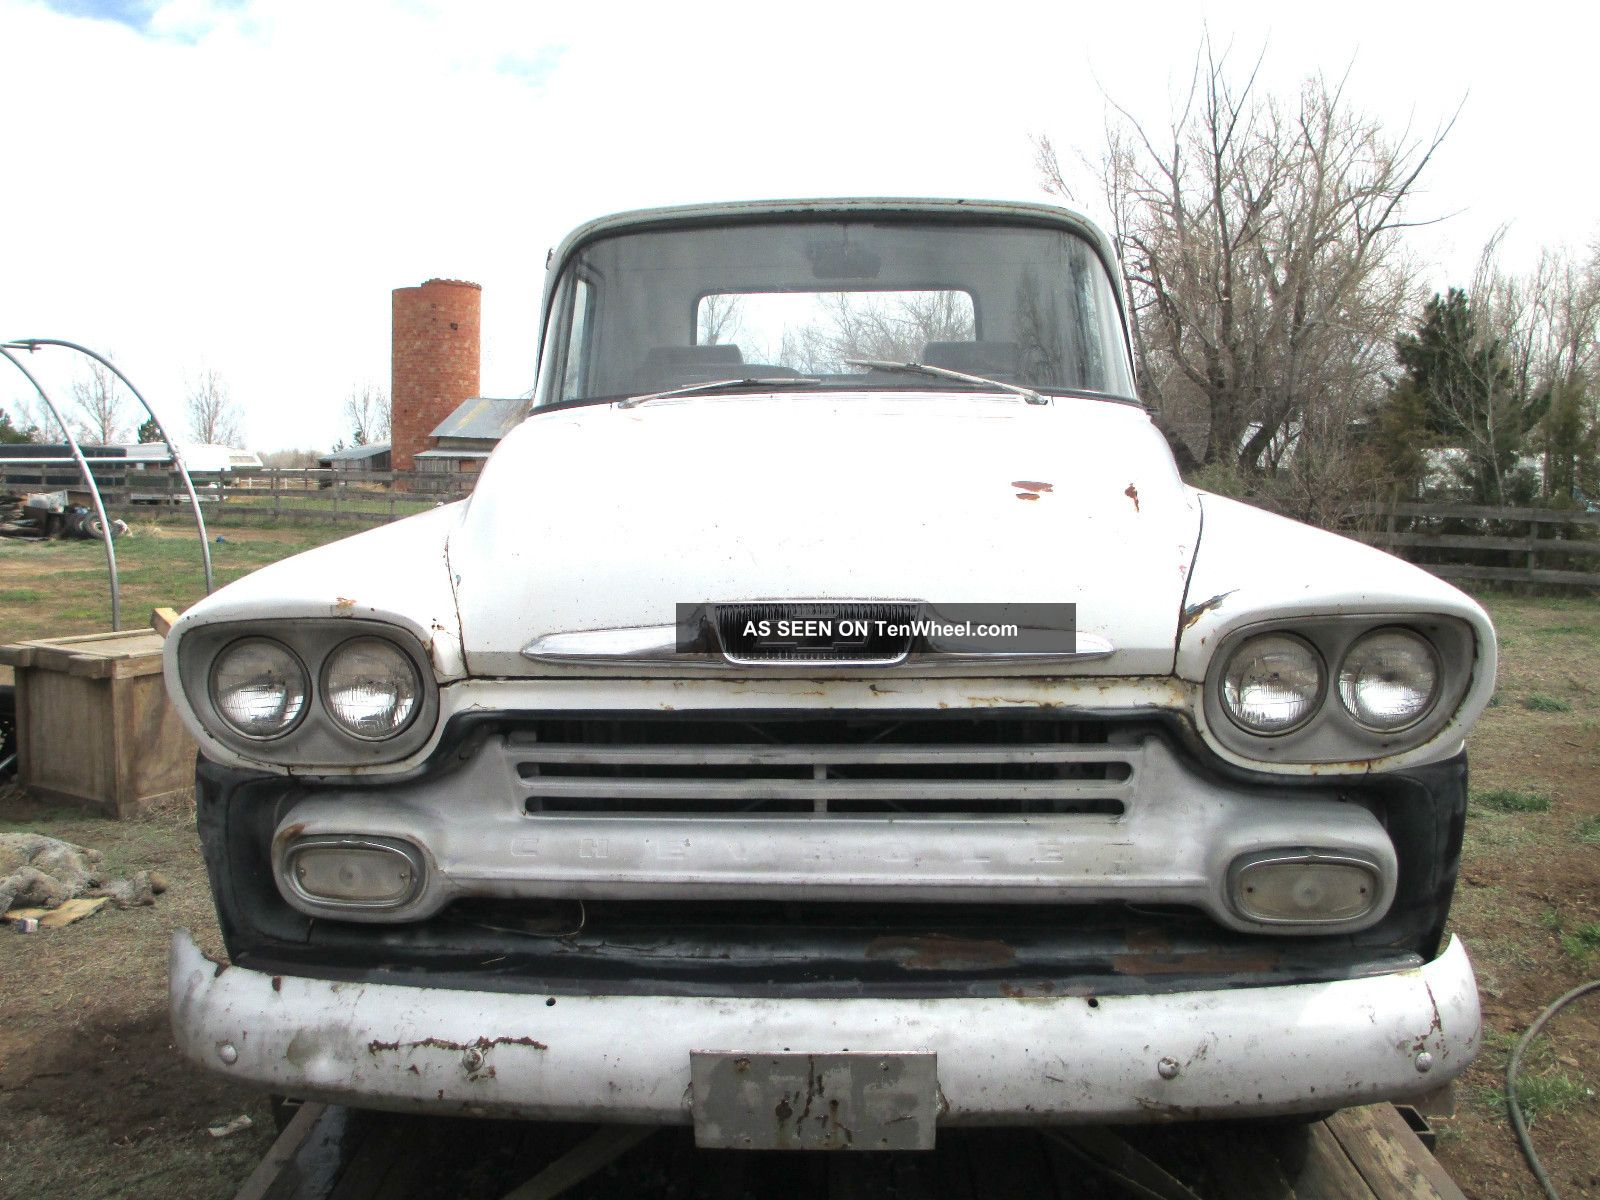 1958 Chevy Chevrolet Apache 32 Pickup Truck 1 / 2 Ton Key & Title Other Pickups photo